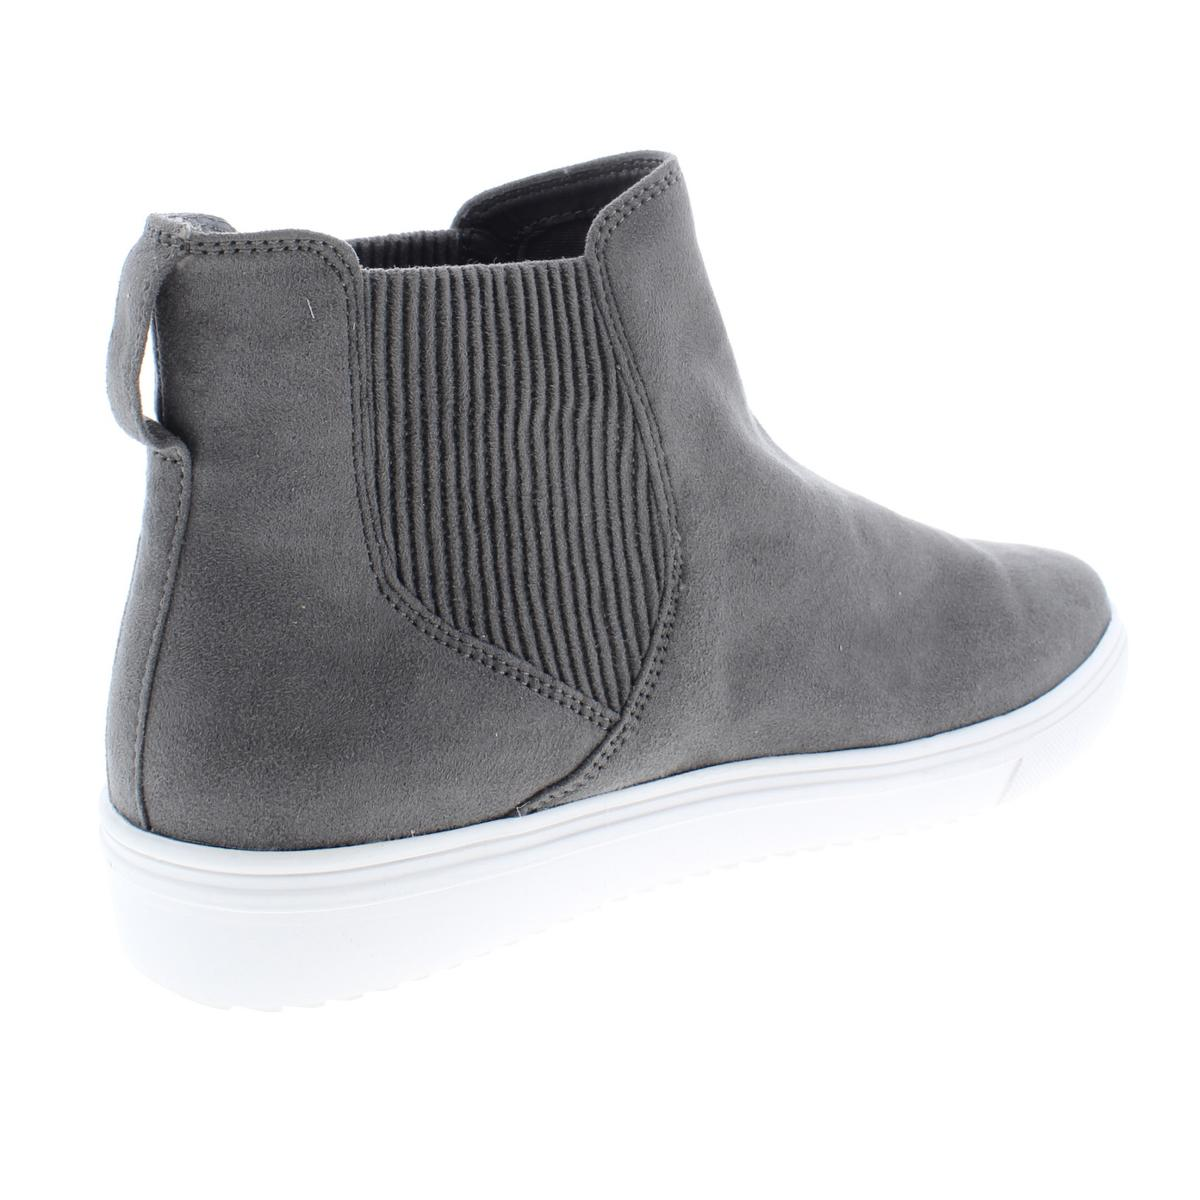 83c549c9edc Steven By Steve Madden Womens Coal Faux Suede Fashion Sneakers Shoes ...